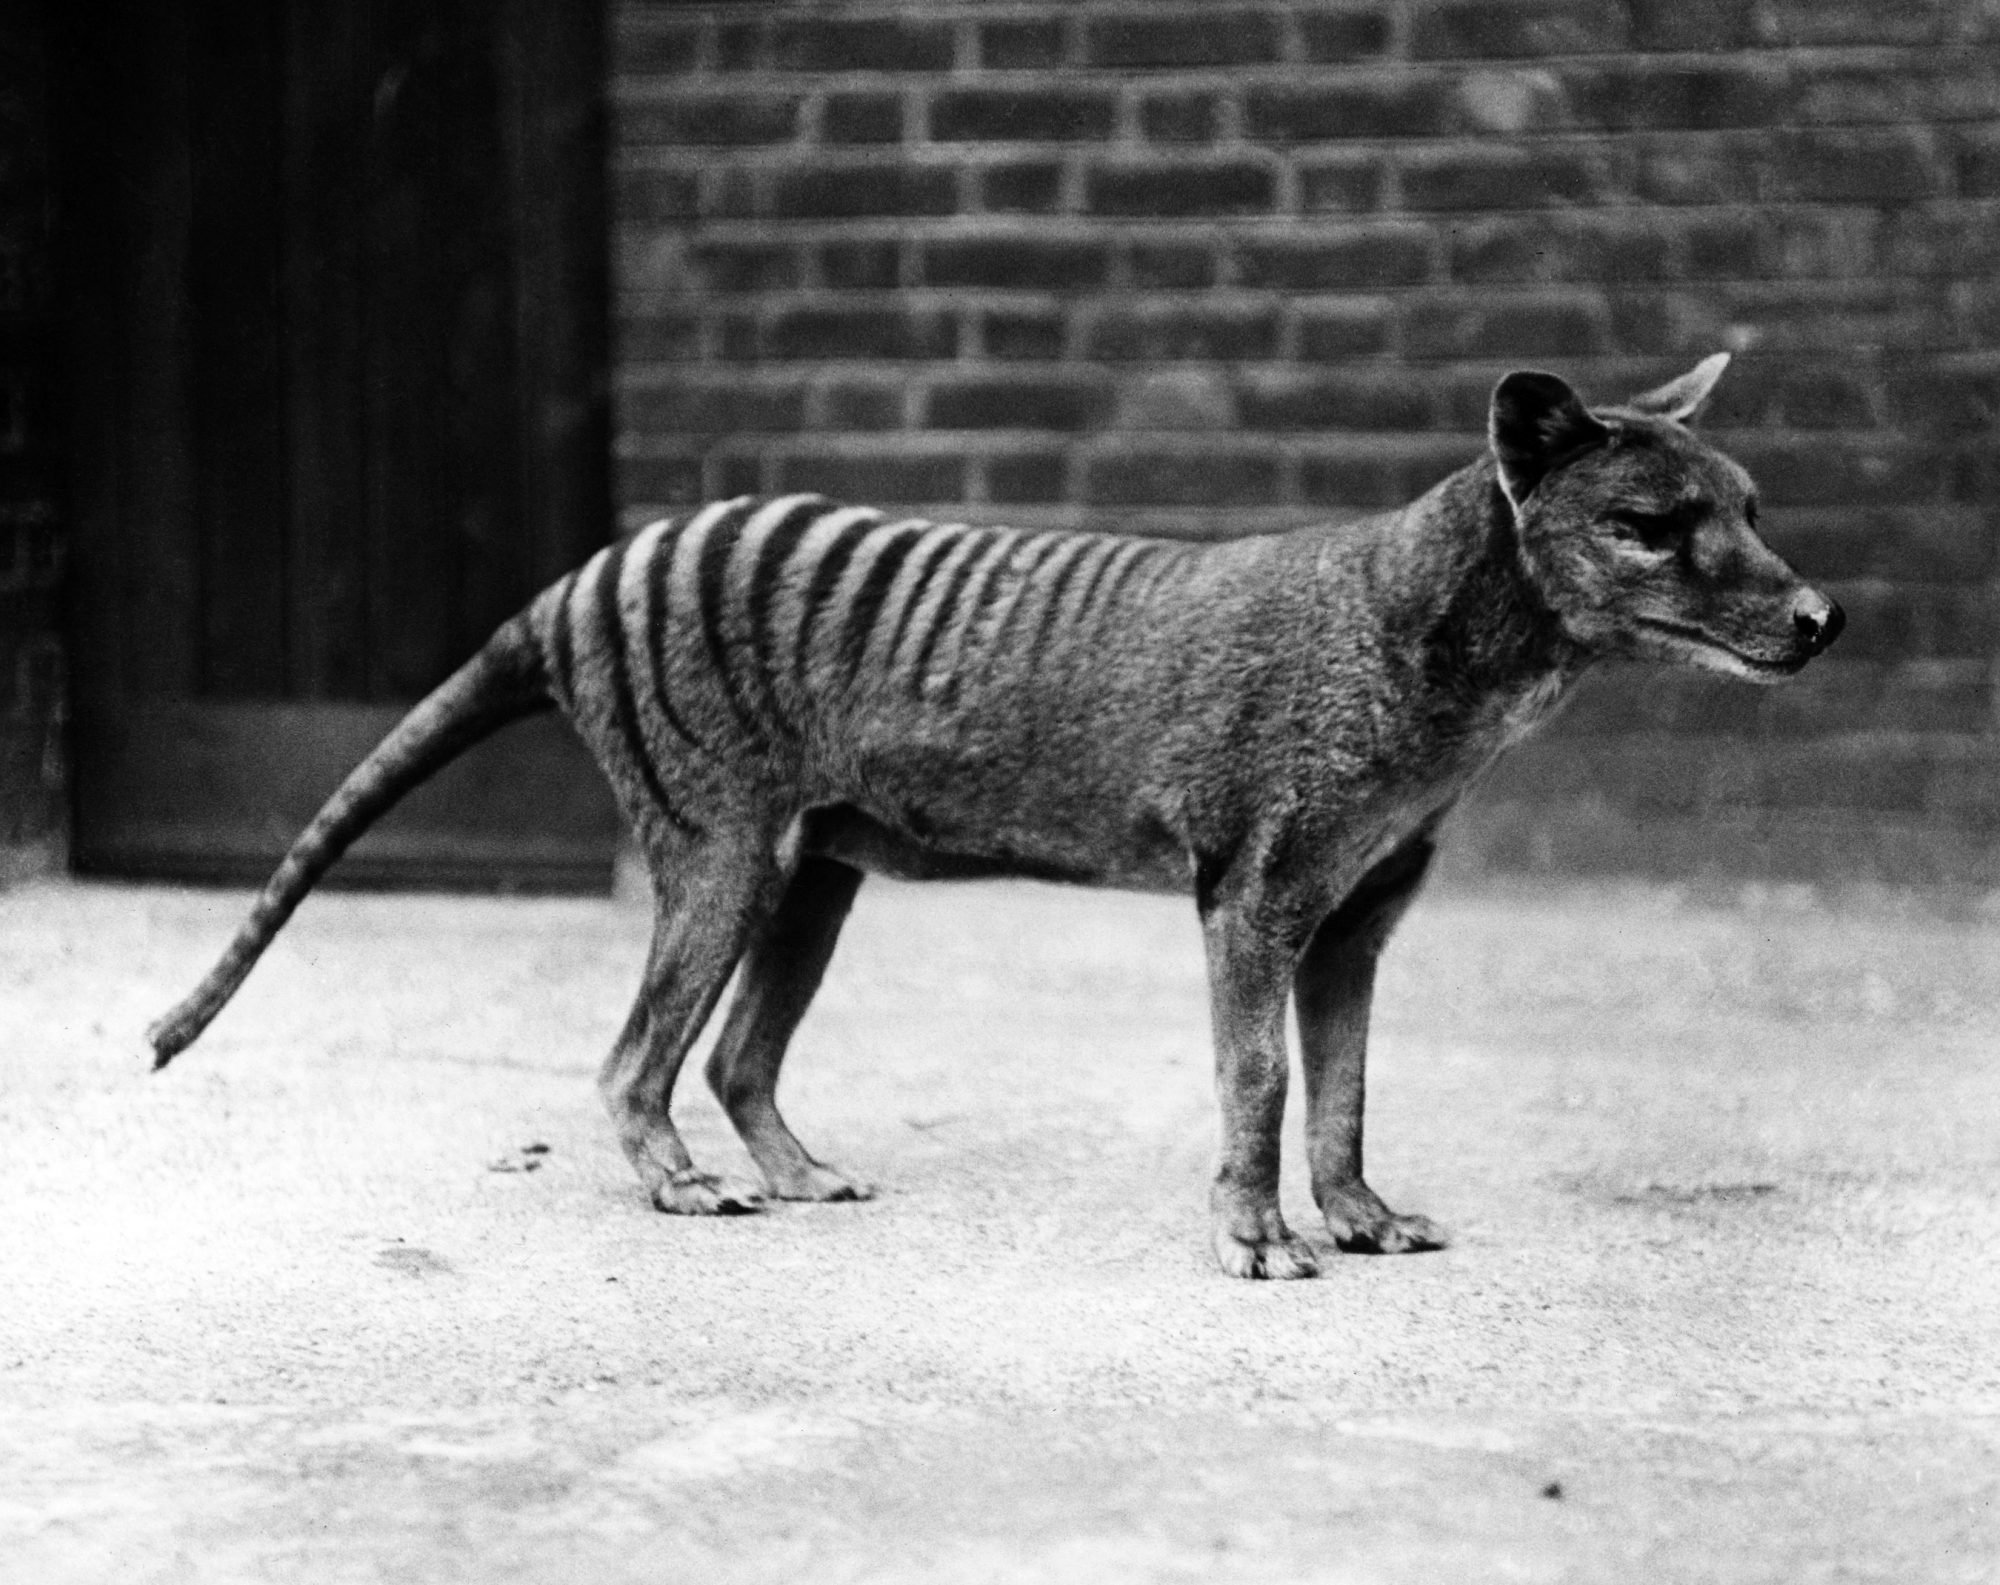 Sightings Show That The Extinct Tasmanian Tiger May Still Be Alive People Com